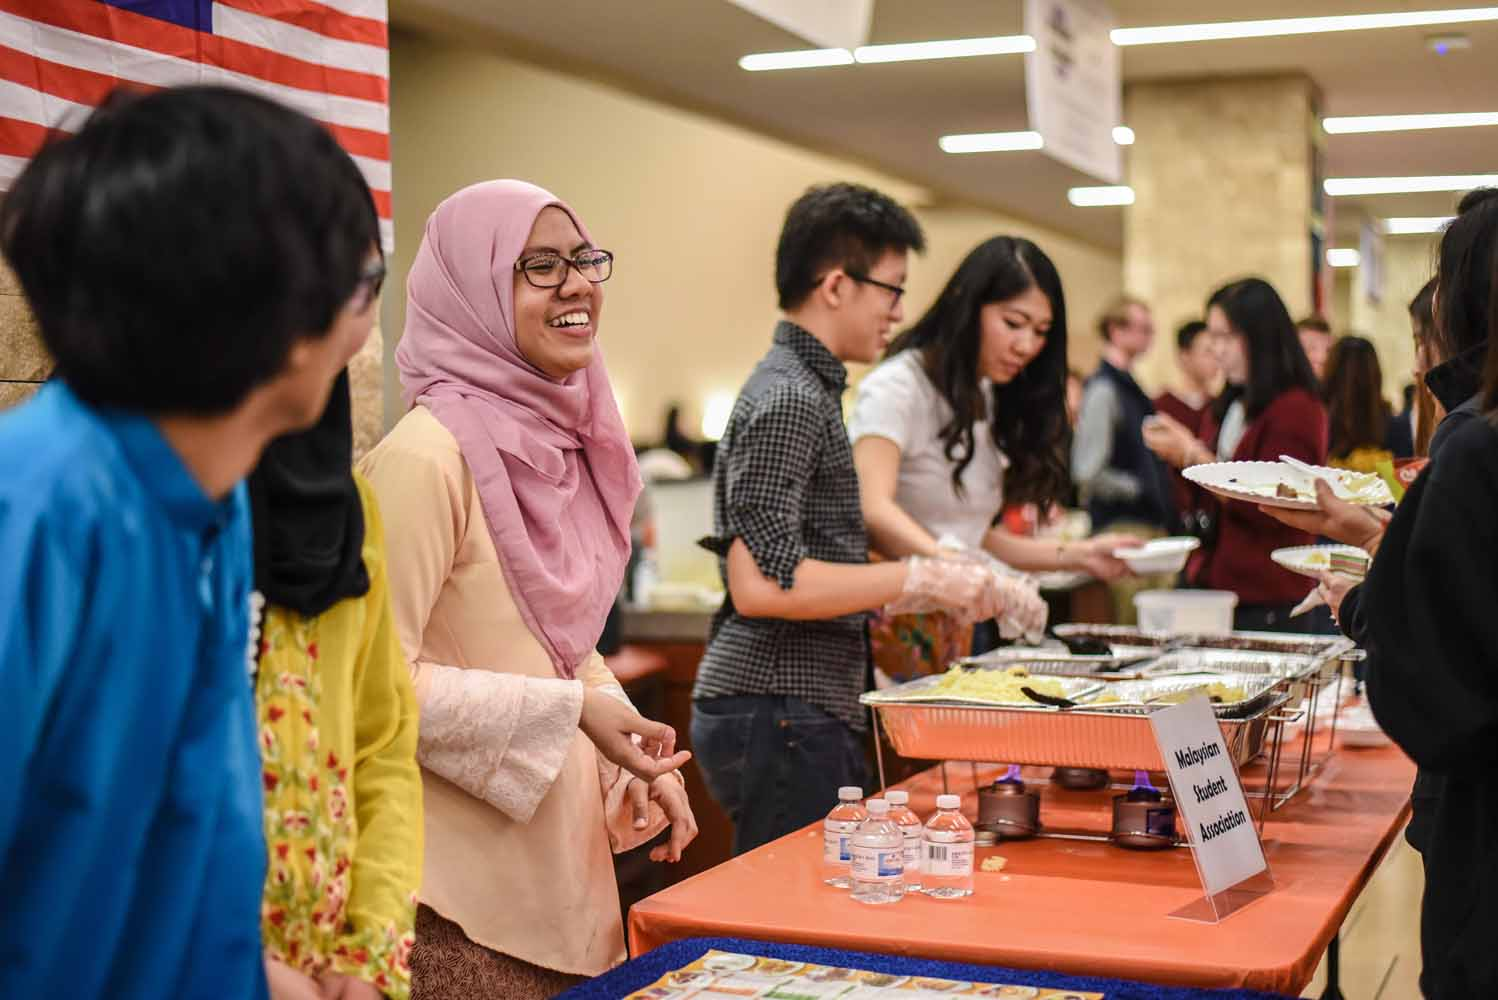 Nasyitah Indra joined several other members of the Malaysian Student Organization at the International Welcome Party on Saturday, February 6, 2016. (Photo by Morgan Lieberman)